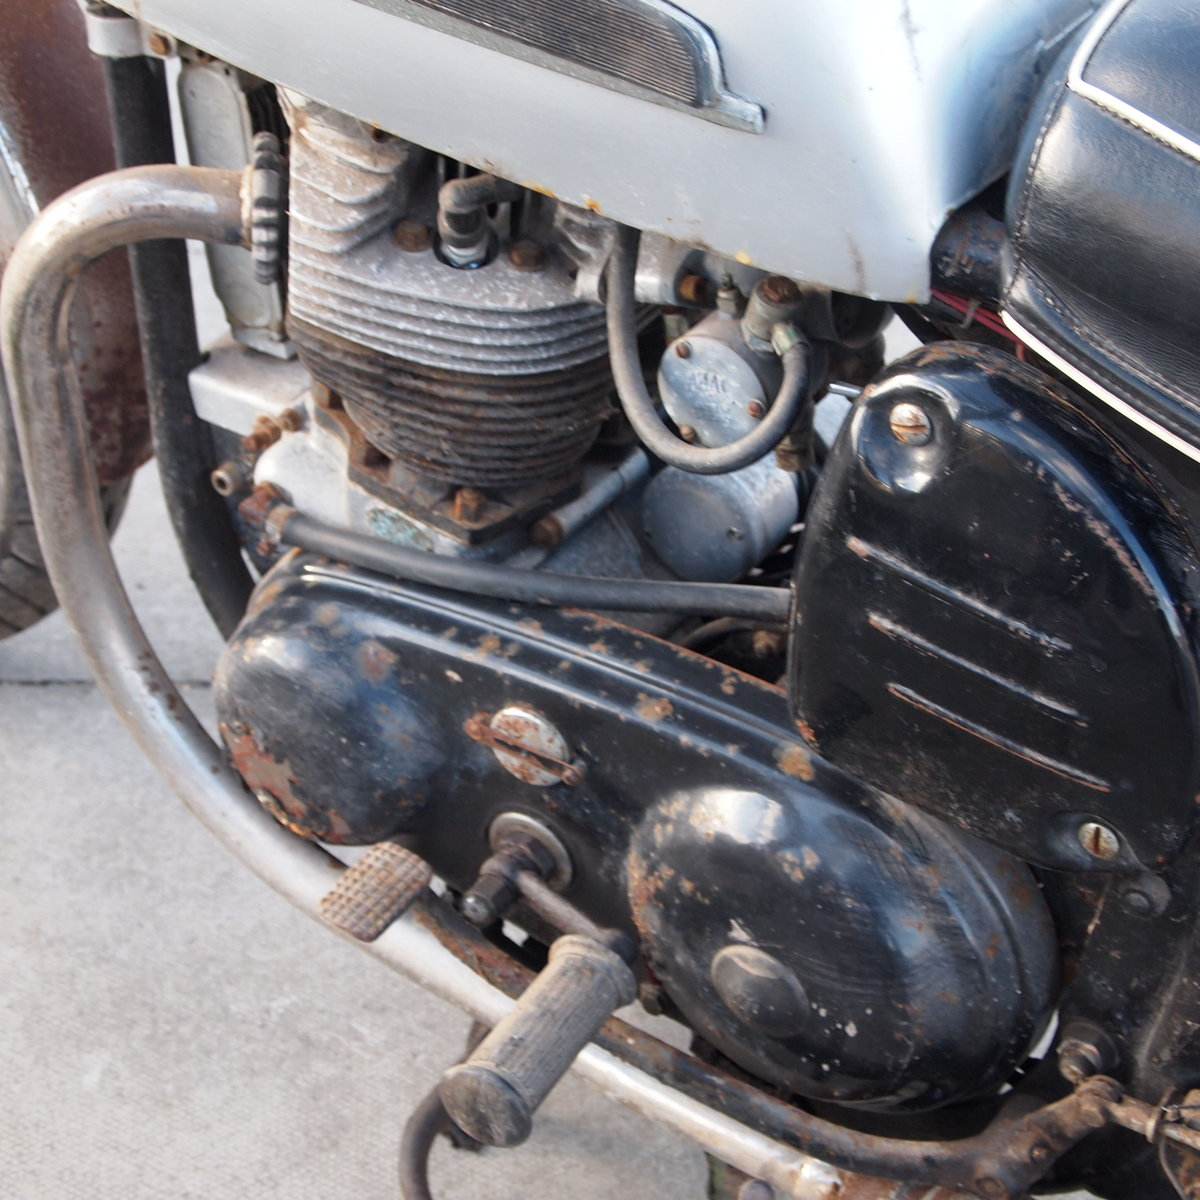 1965 Norton Atlas 750cc Project / Last Used In 2010. SOLD (picture 2 of 6)